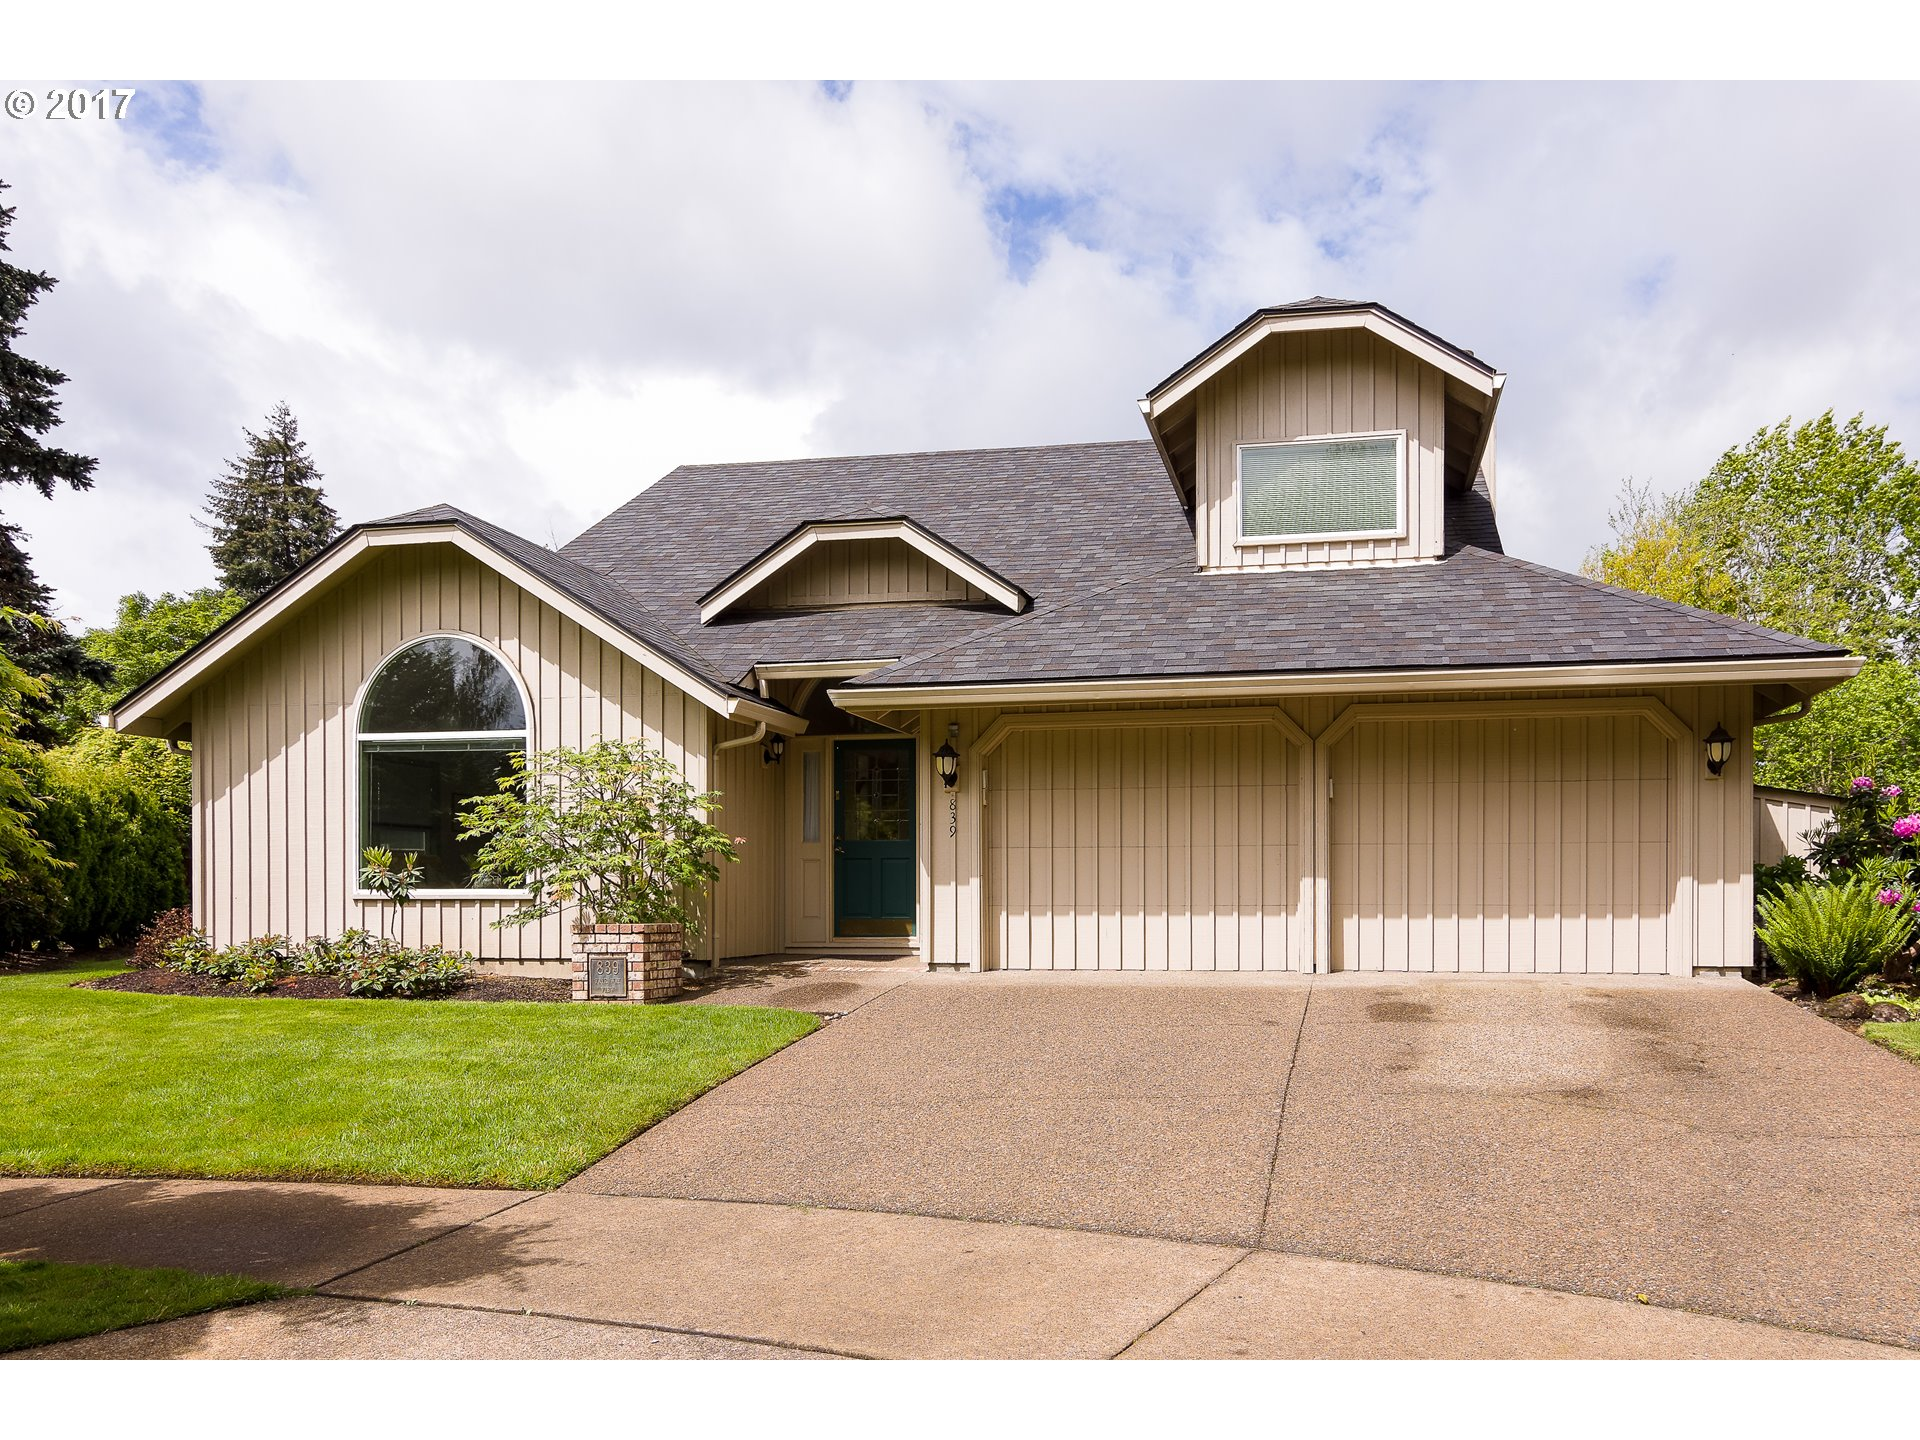 839 FAIRWAY VIEW DR, Eugene OR 97401